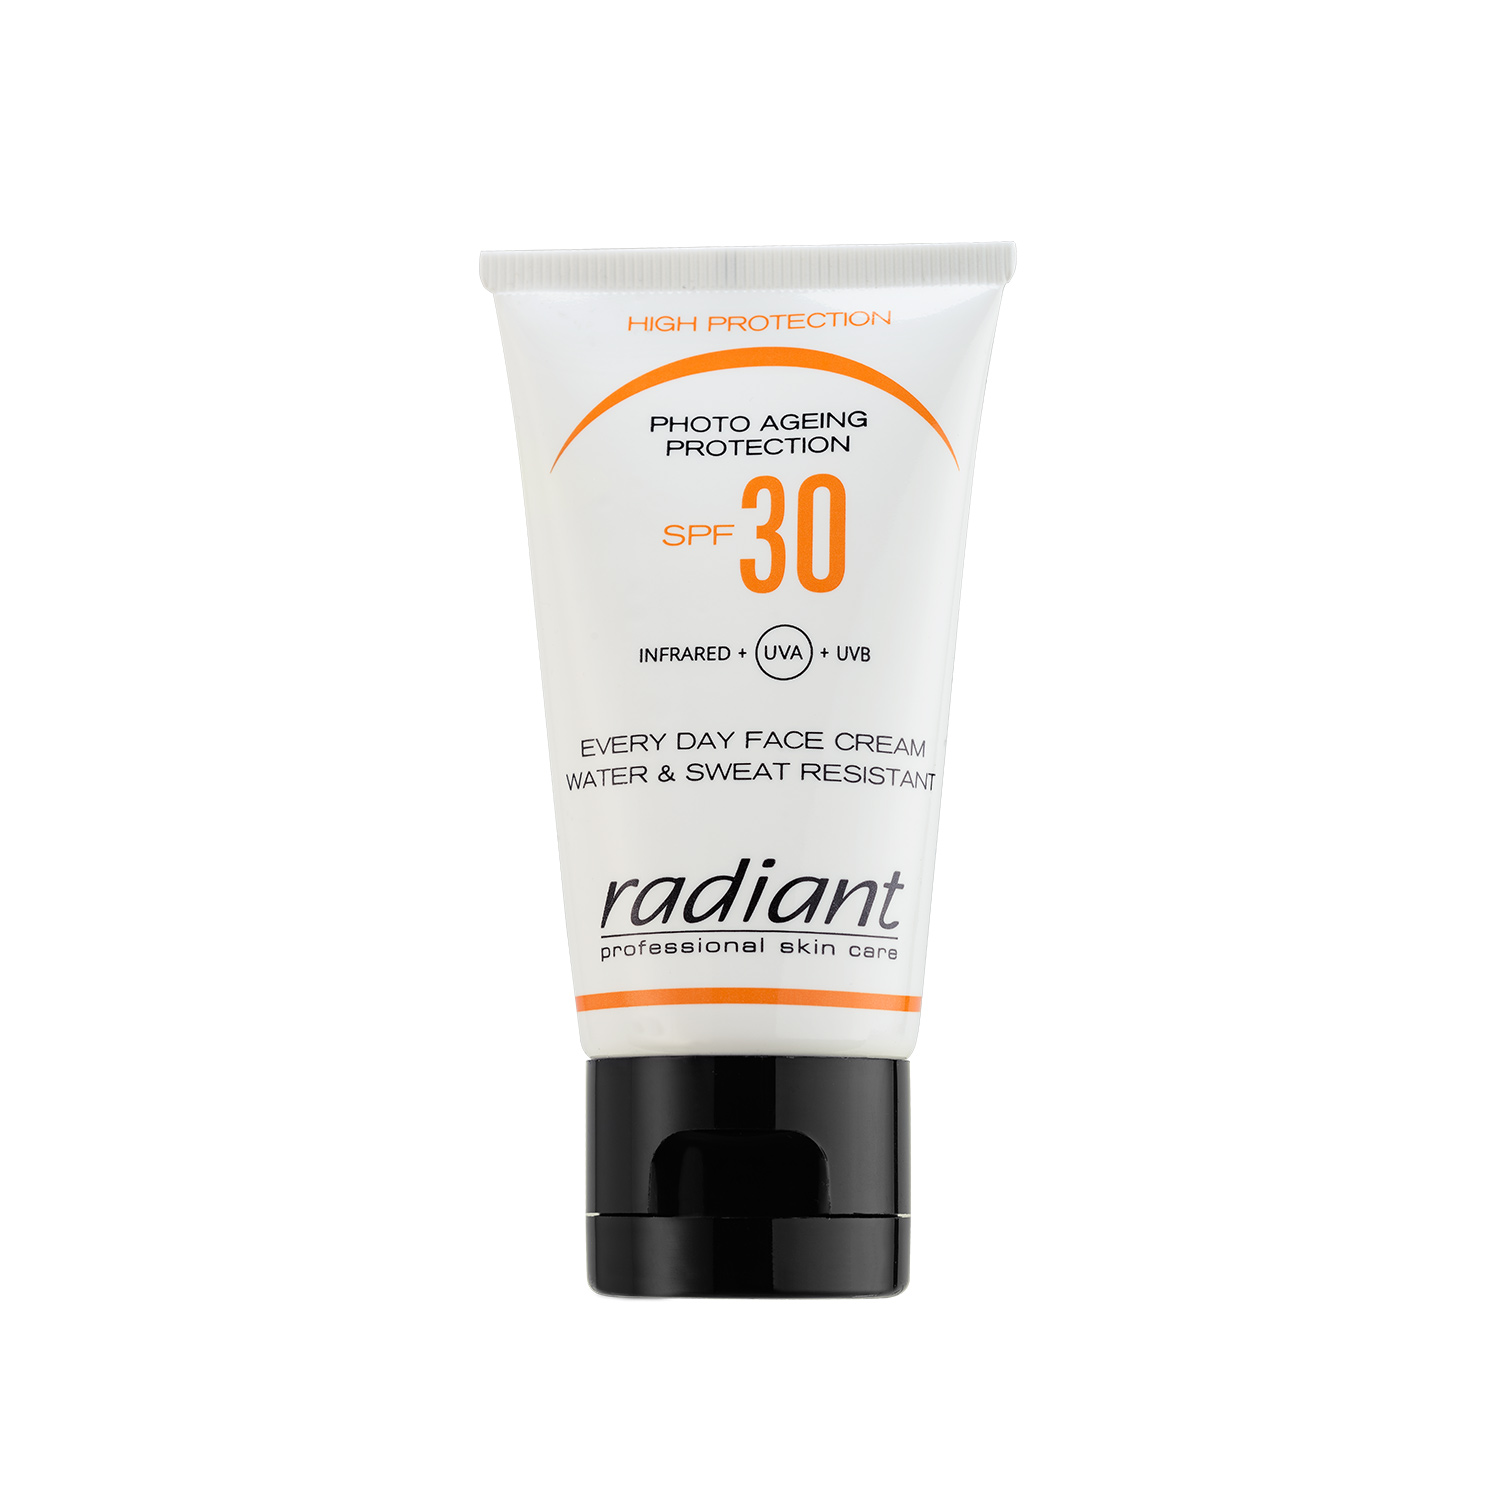 PHOTO AGEING PROTECTION SPF 30